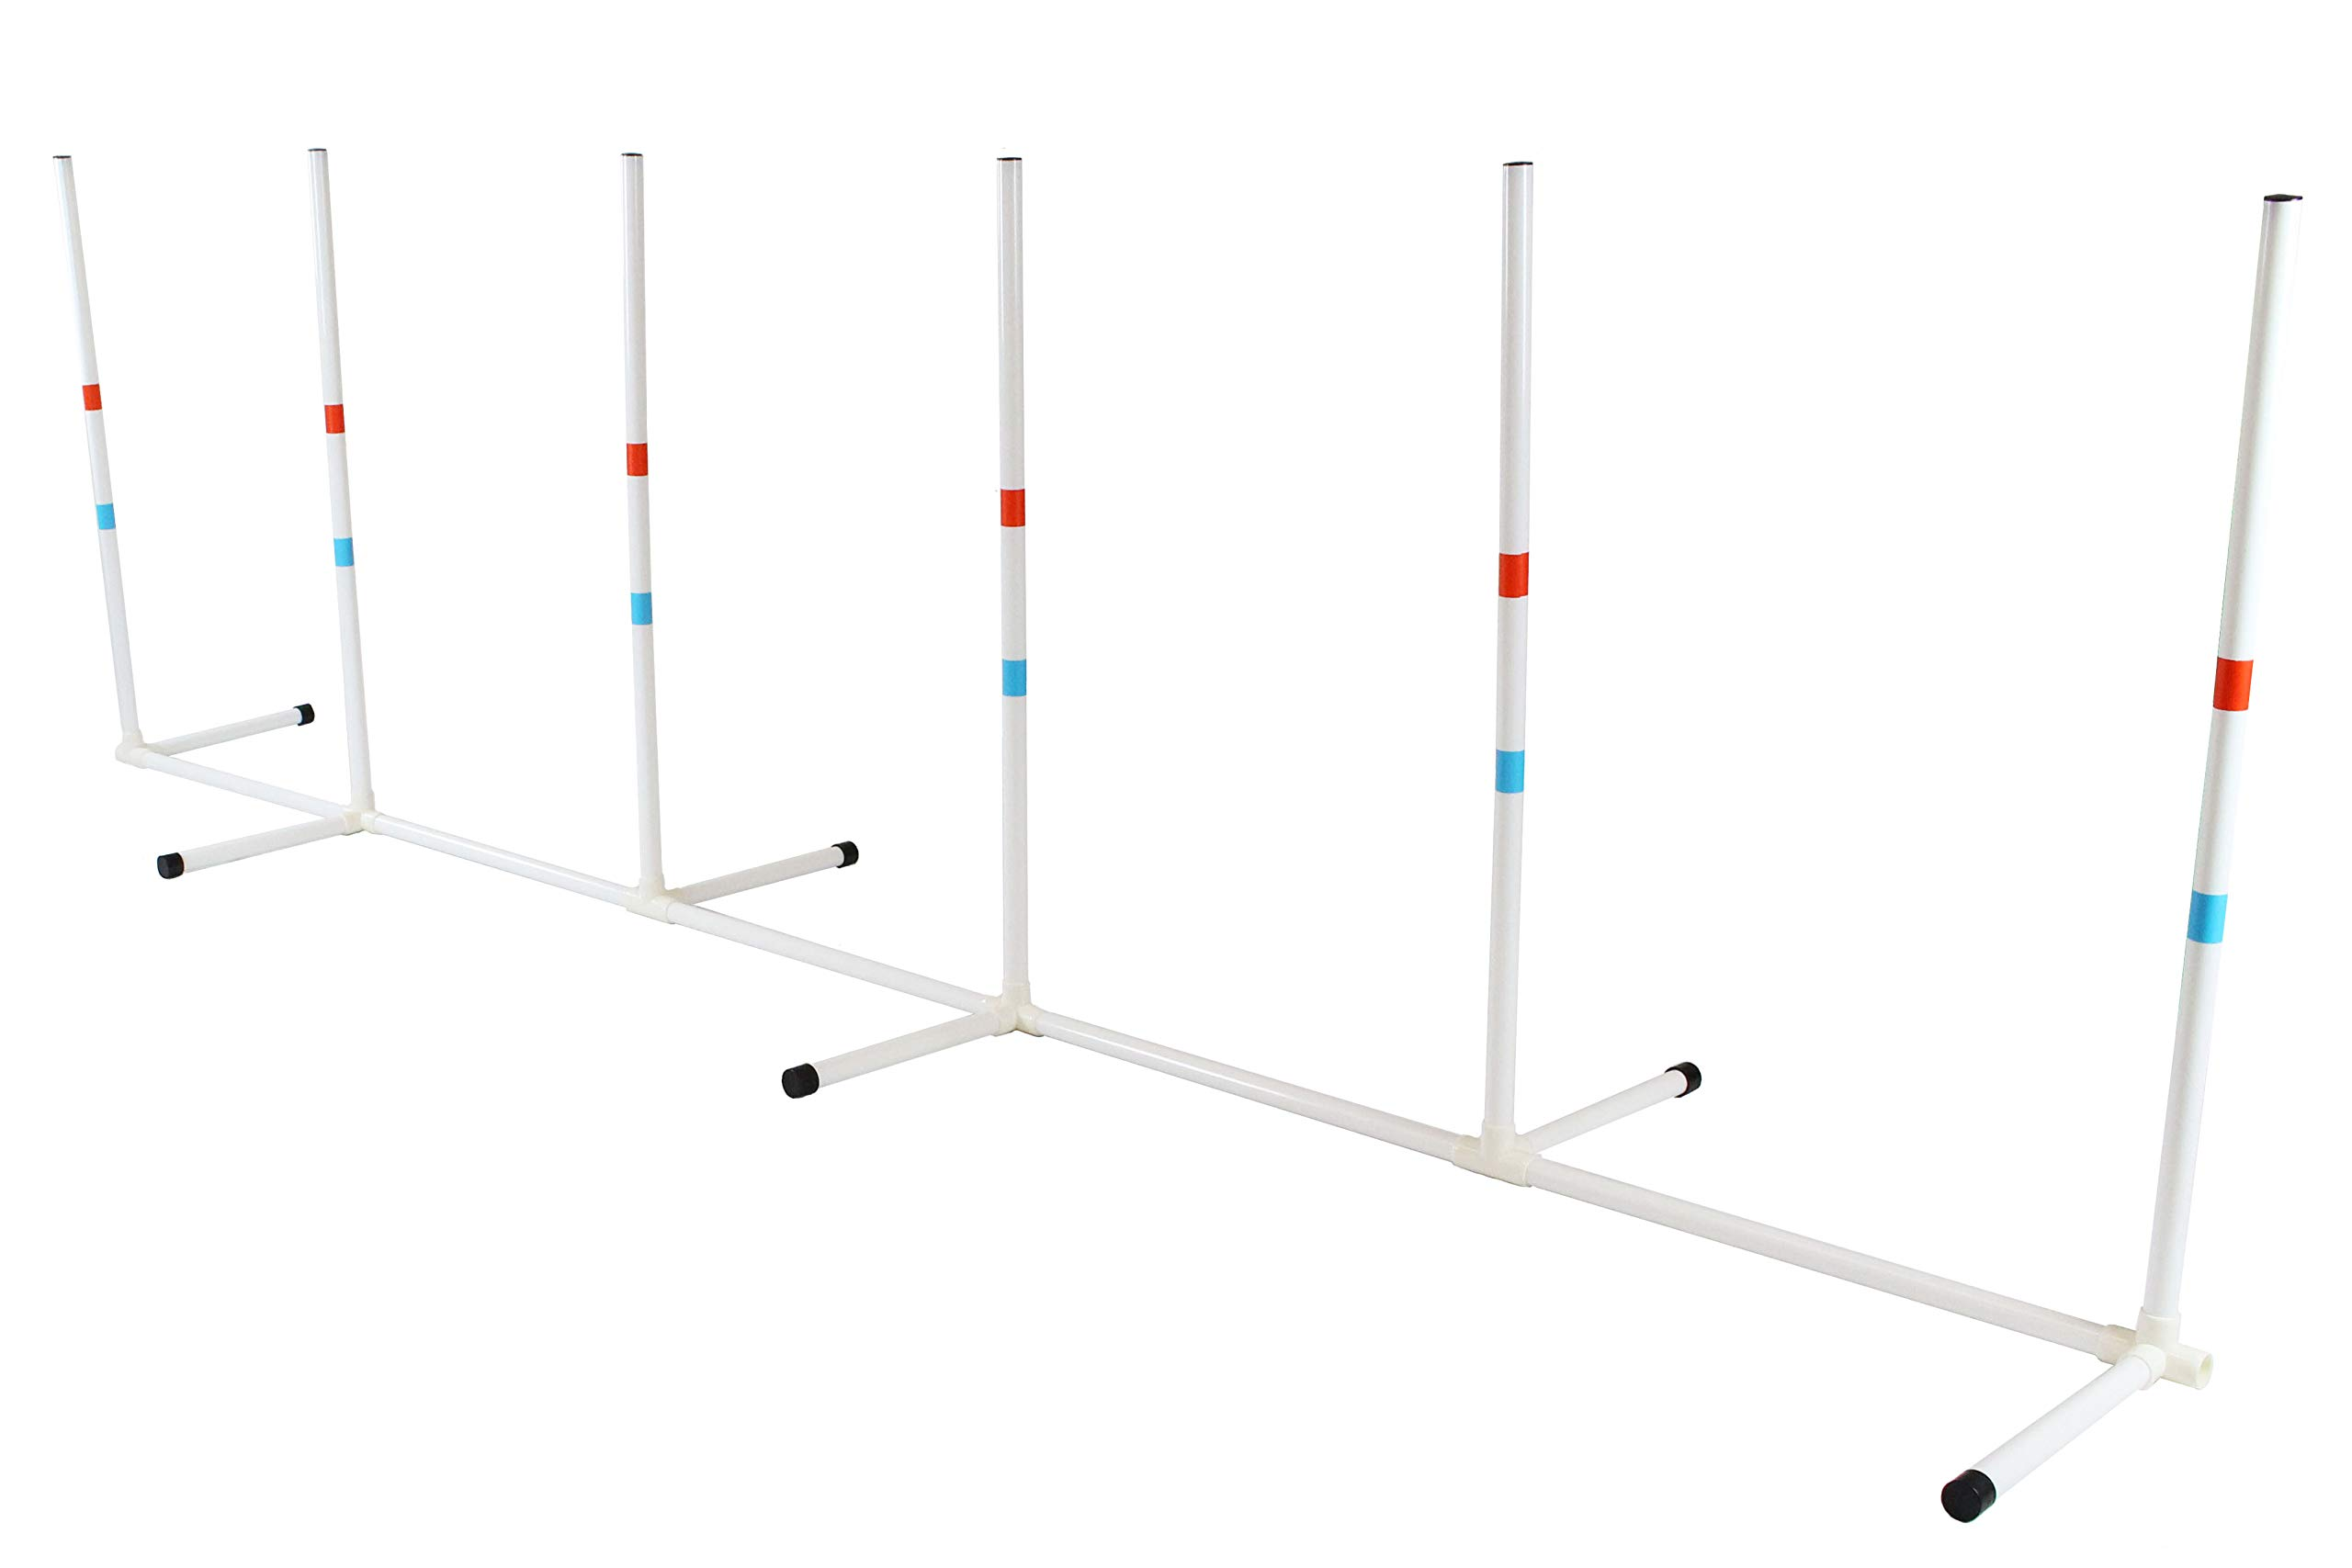 Midlee Dog Agility Weave Poles - Portable Canine Training Equipment - Outdoor Games, Weaving Practice - Light Weight with Carrying Bag by Midlee